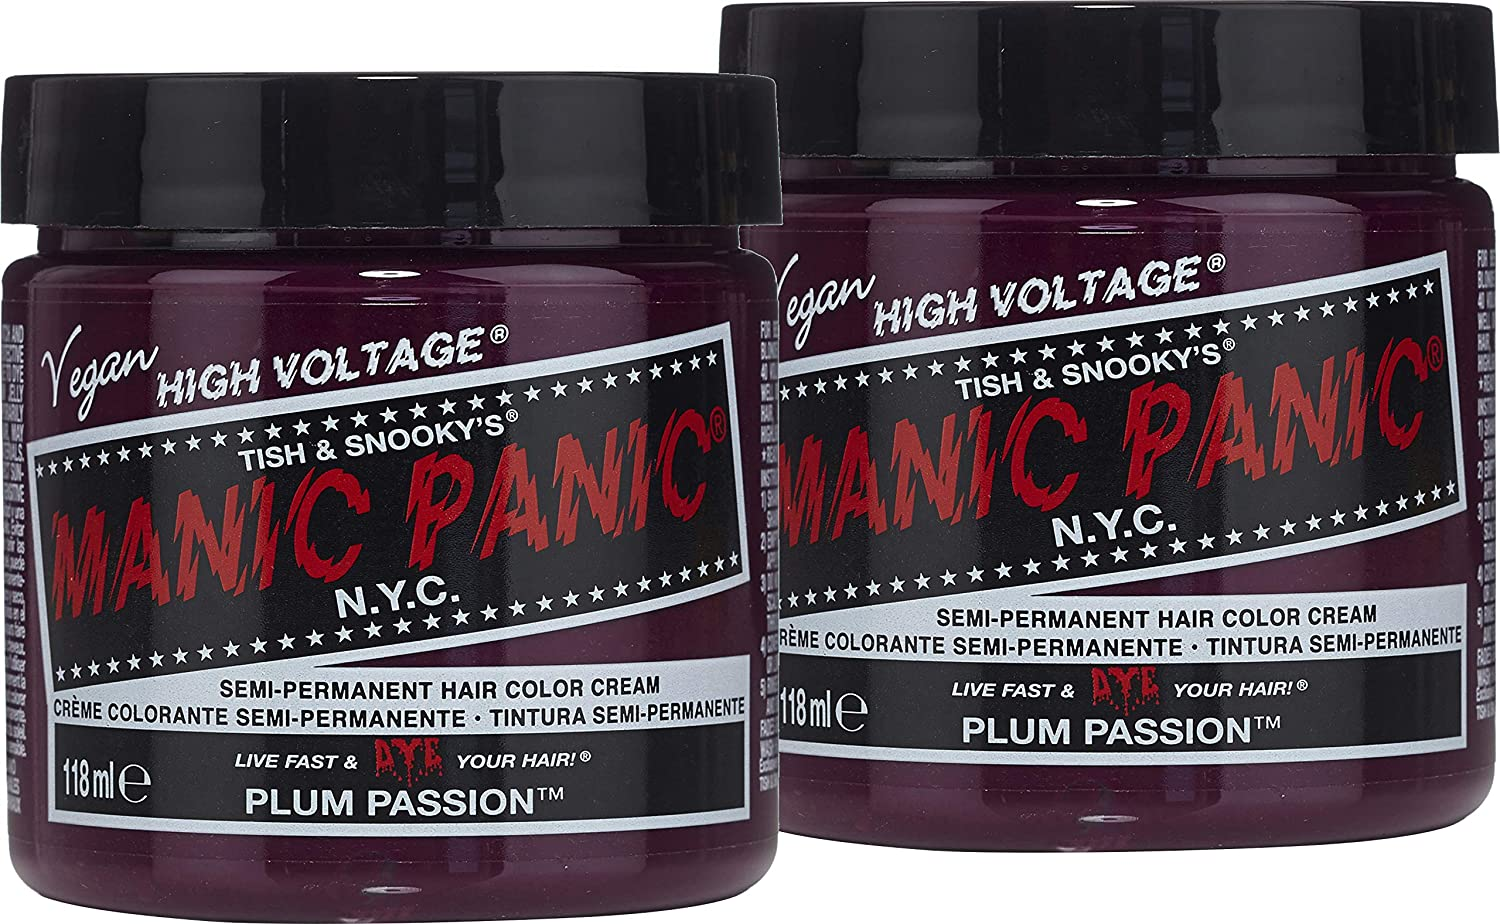 Manic Panic Plum Passion Hair Dye - Classic High Voltage - (2PK) Semi Permanent Hair Color - Purple Shade With Red Undertones - For Dark & Light Hair – Vegan, PPD & Ammonia-Free - For Coloring Hair